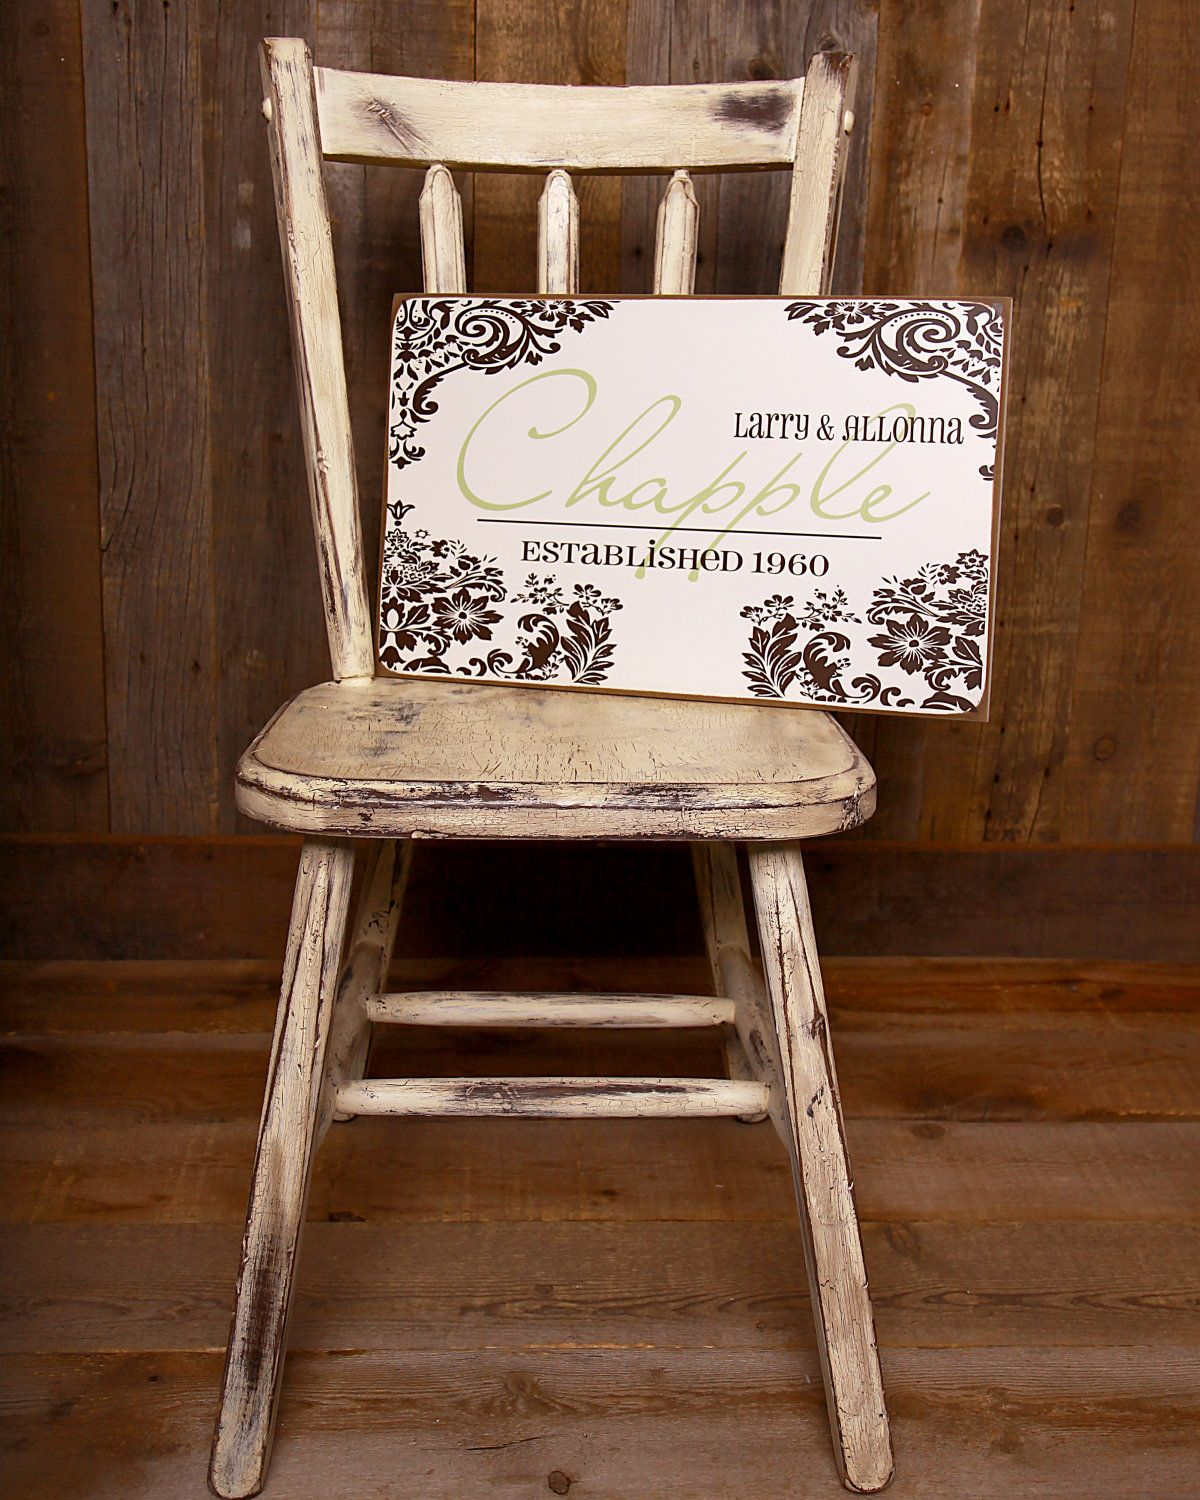 Modern shabby chic personalized plaque perfect wedding